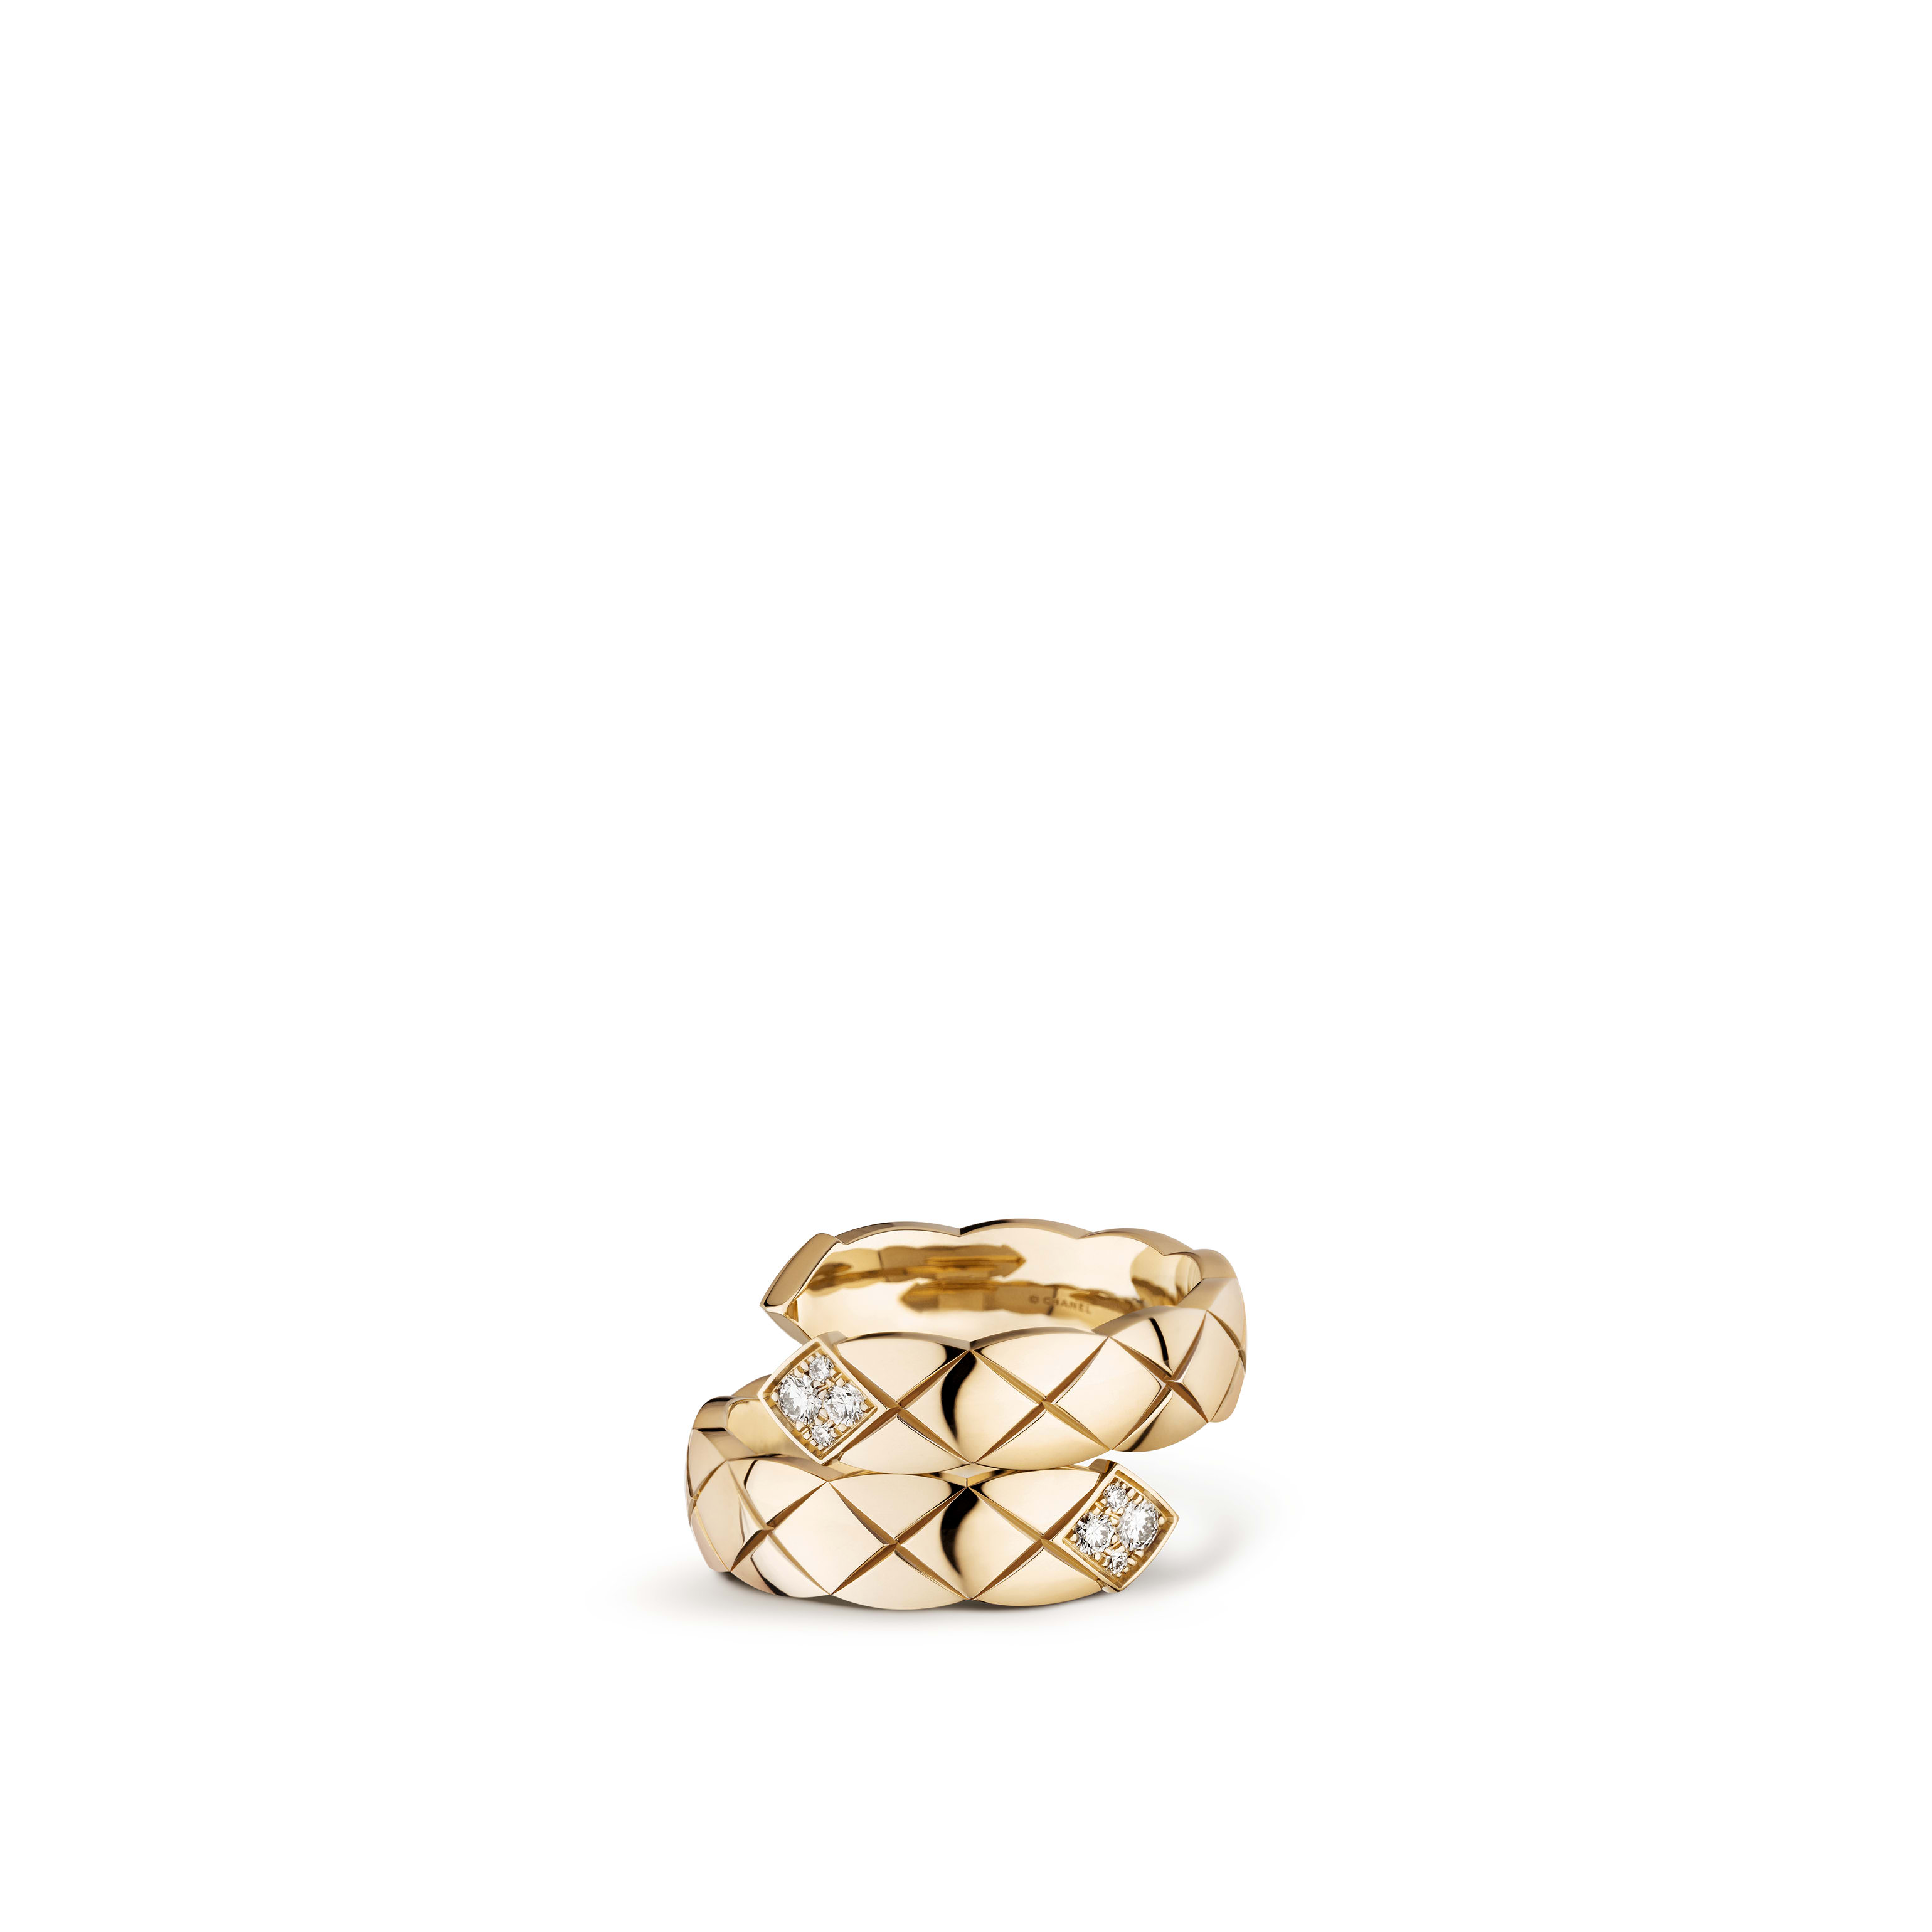 Coco Crush Toi et Moi ring - Quilted motif, large version, 18K BEIGE GOLD, diamonds - CHANEL - Default view - see standard sized version